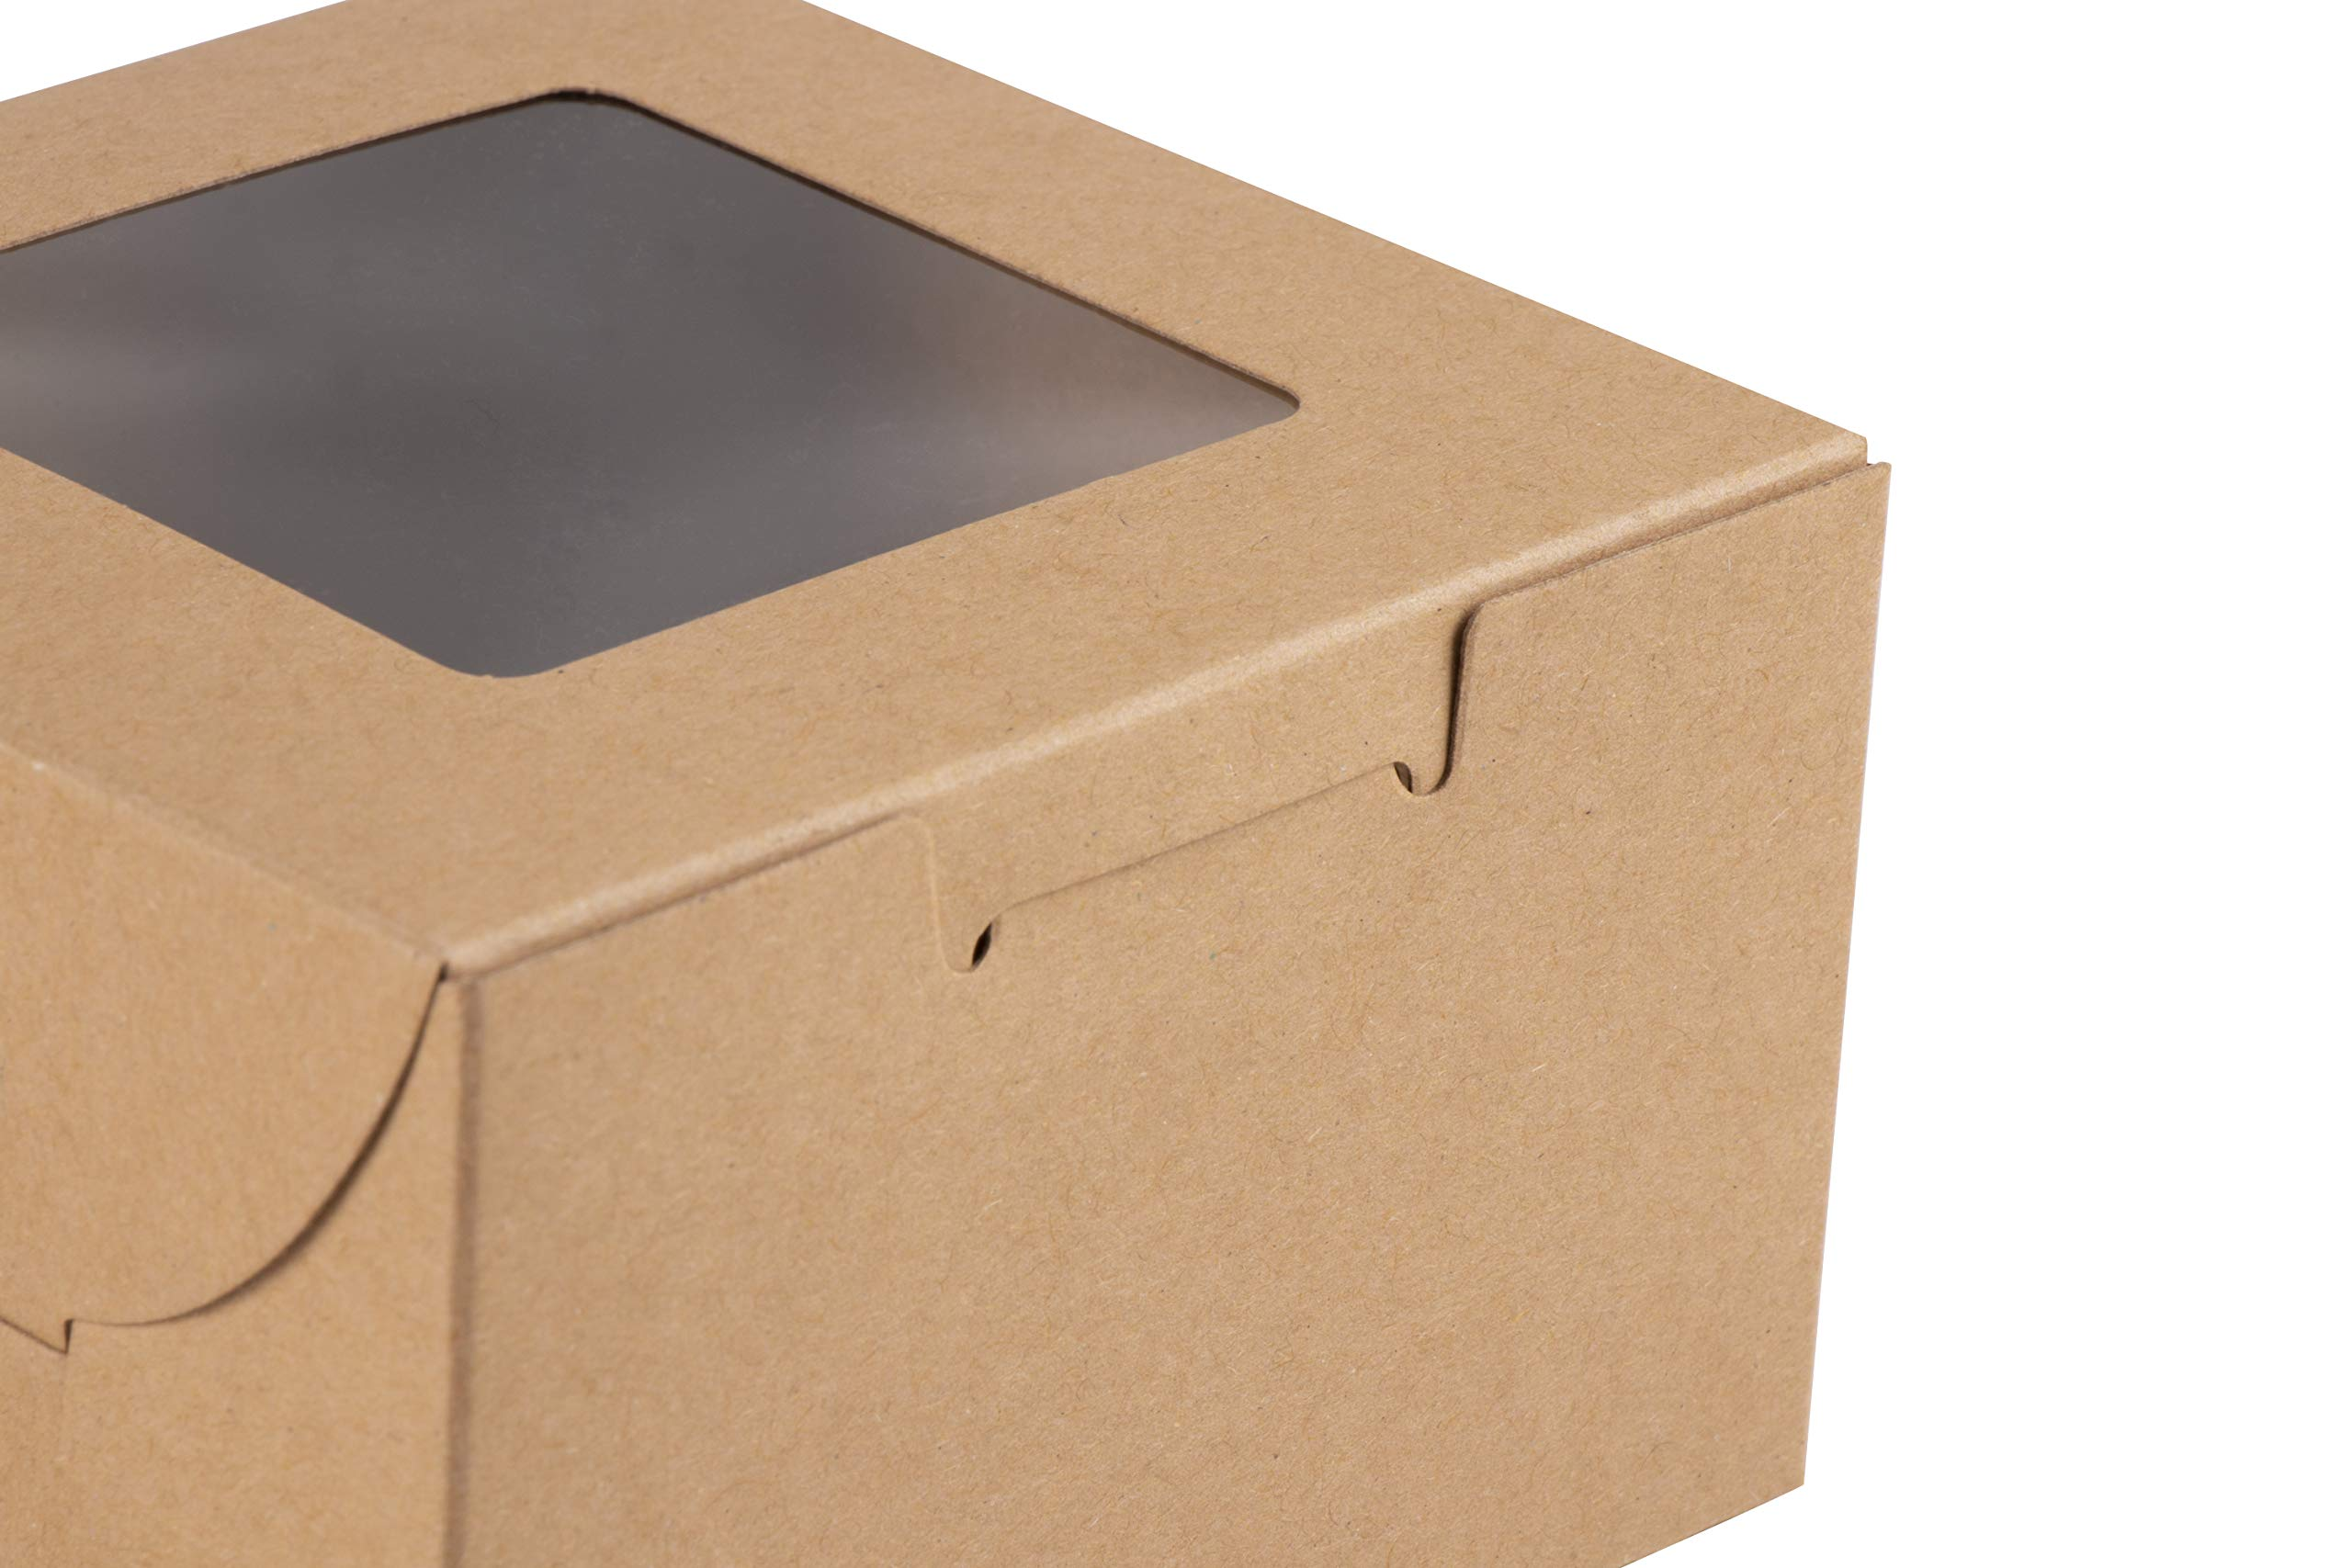 Kraft Paper Bakery Boxes - 50-Pack Single Pastry Box 4-Inch Packaging with Clear Display Window, Donut, Mini Cake, Pie Slice, Dessert Disposable Take-Out Container, Holds 1, Brown, 4 x 2.3 x 4 Inches by Juvale (Image #6)